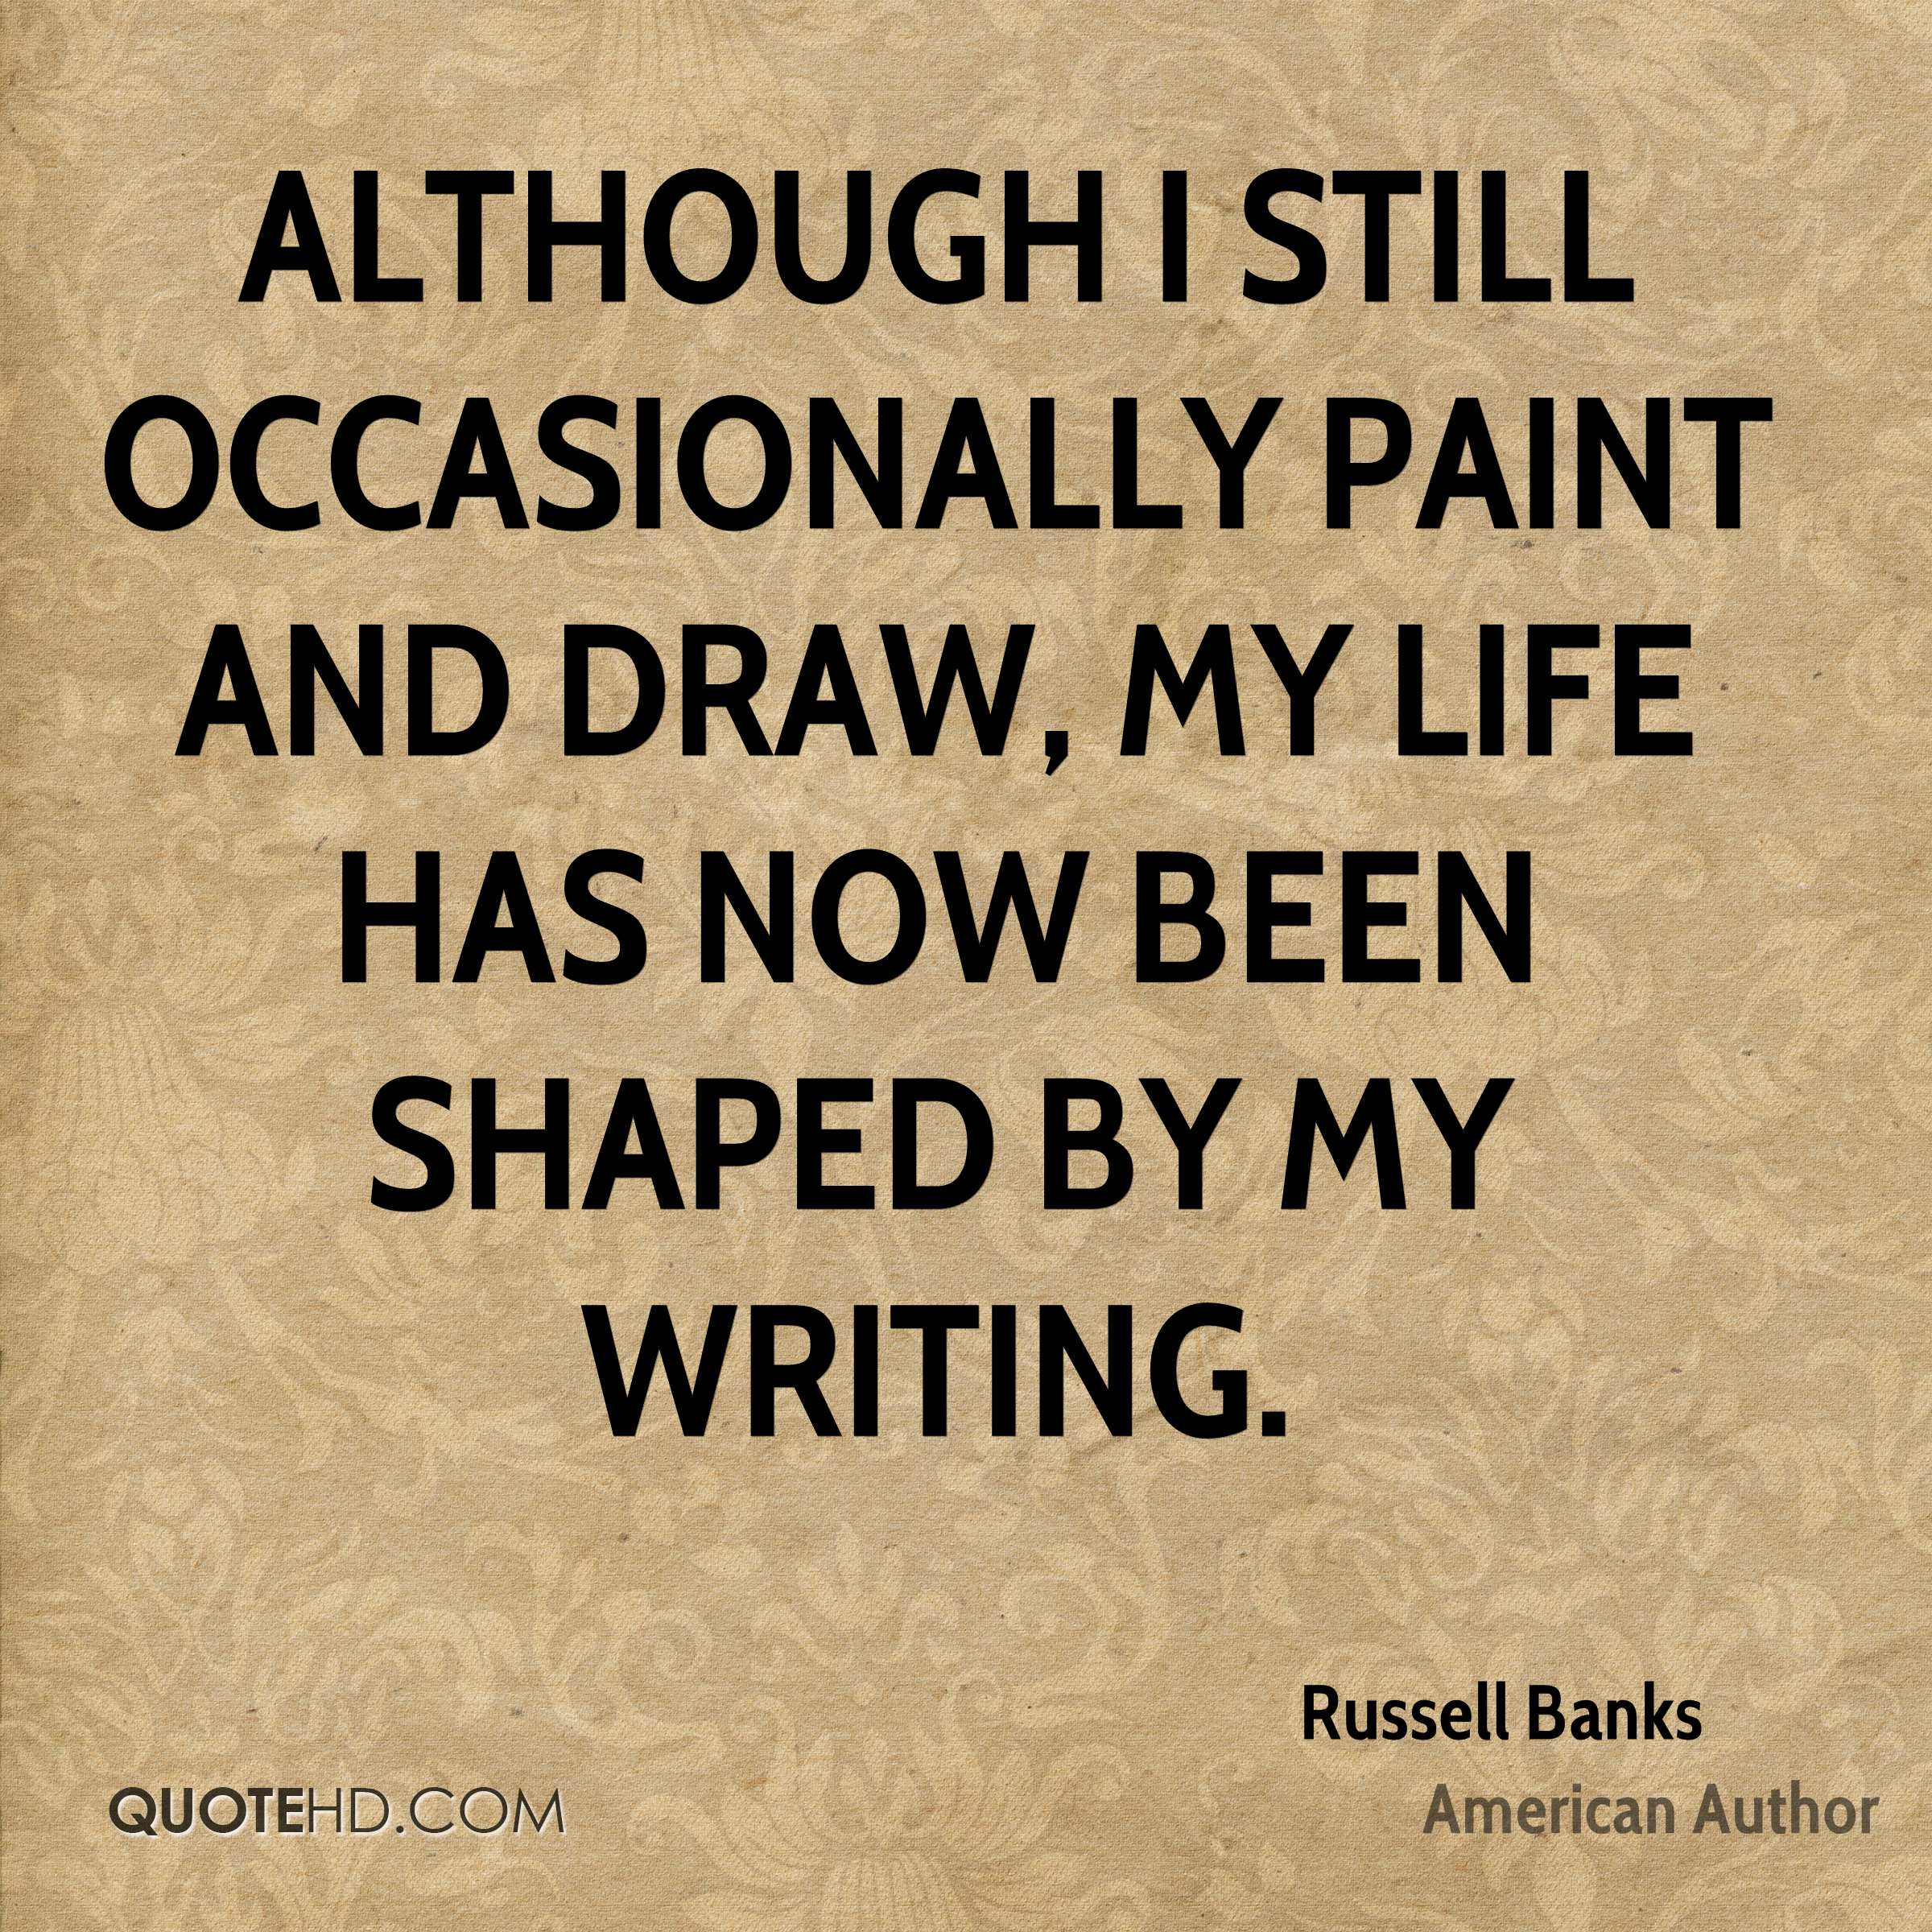 Although I still occasionally paint and draw, my life has now been shaped by my writing.